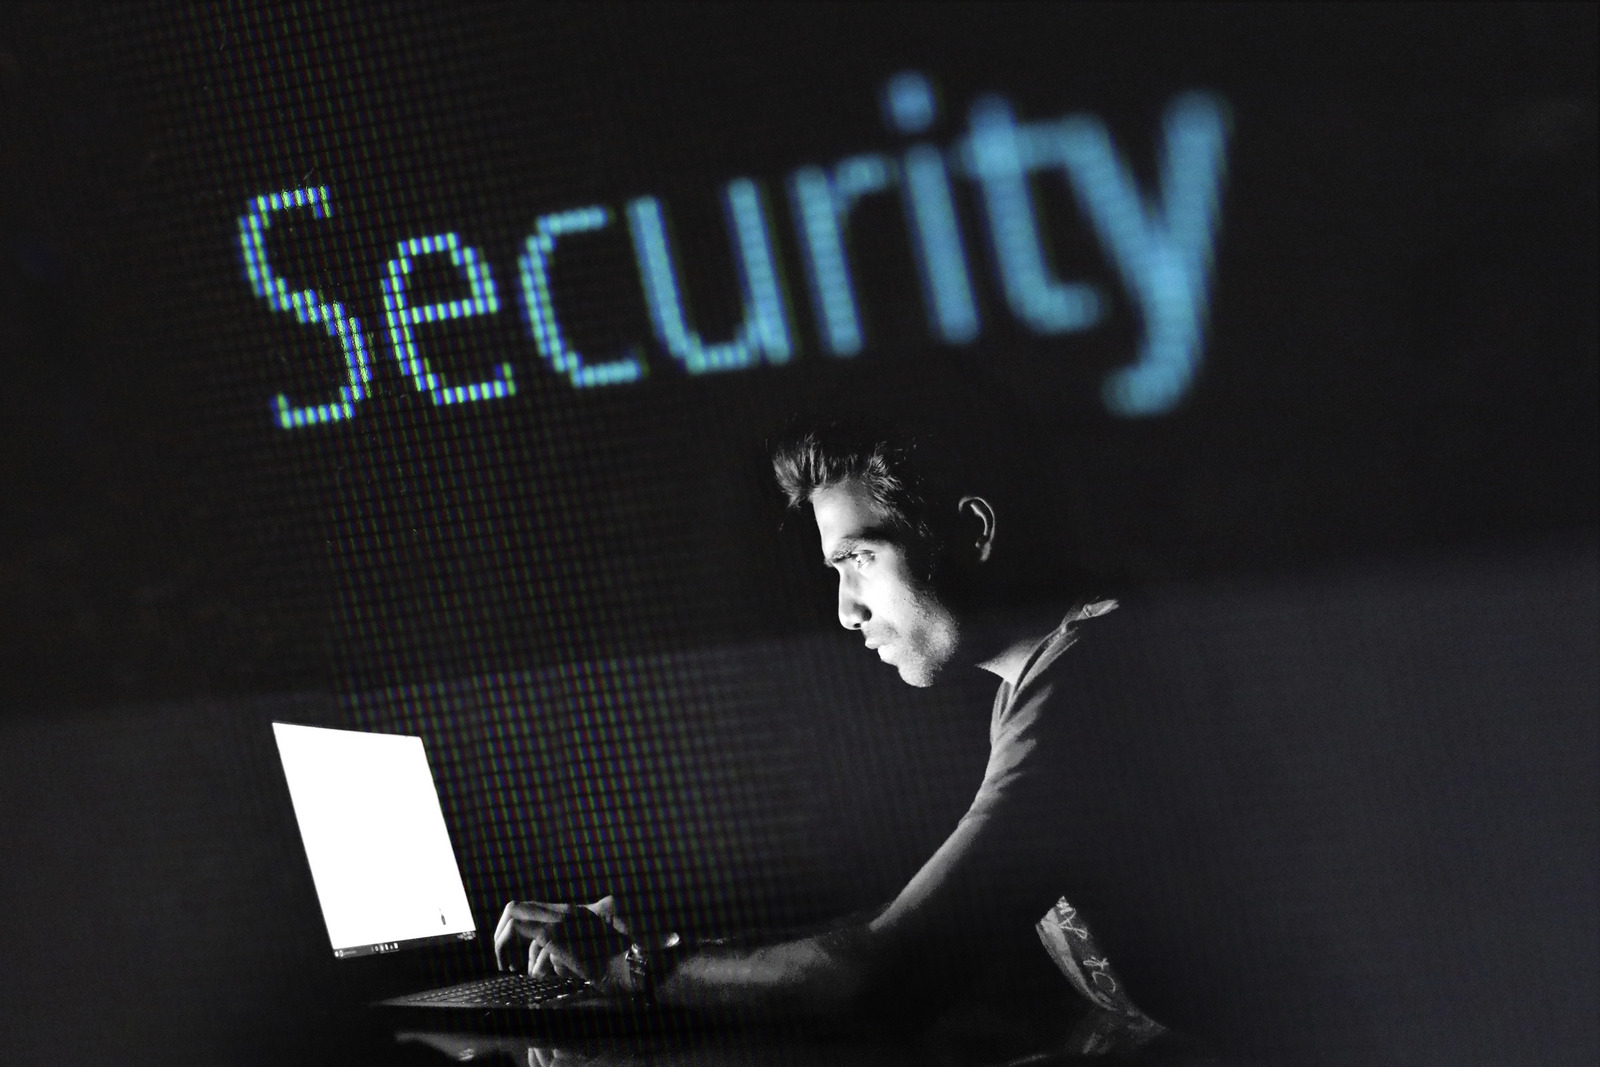 Foto von methodshop--1460919: https://www.canva.com/photos/MADQ5I6TNL0-man-researching-on-laptop-with-security-sign/